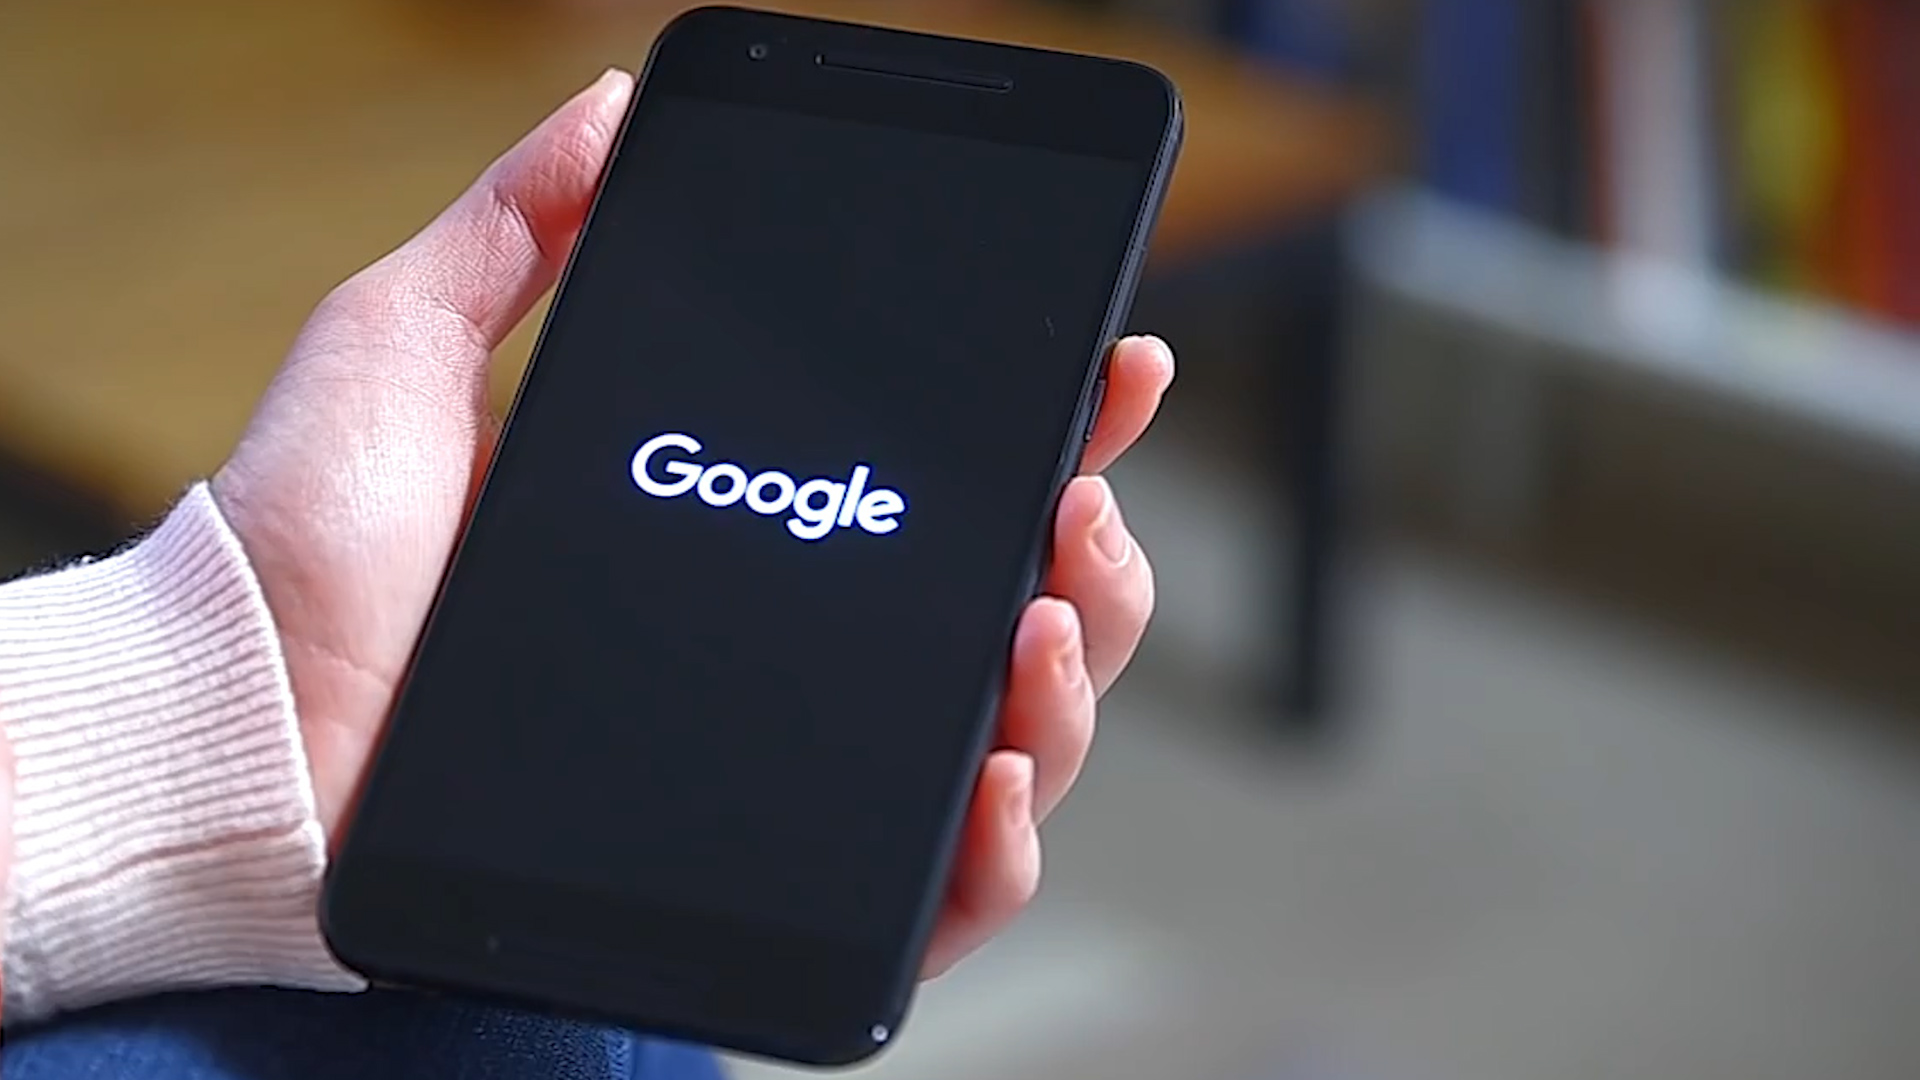 Video: Google to release its own phone, report says